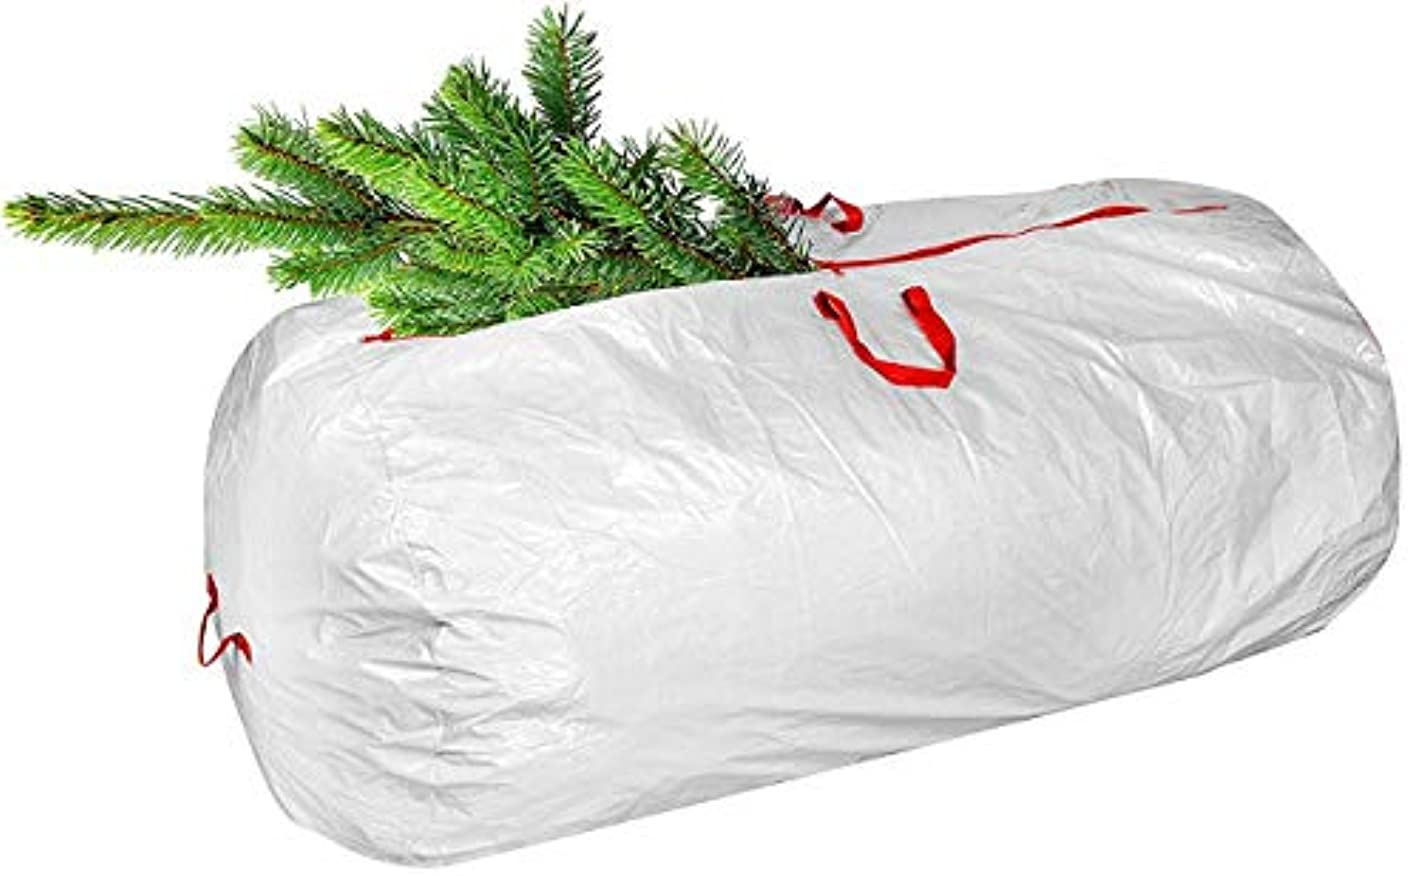 Large Christmas Tree Storage Bag with Durable Reinforced Carry Handles & Sleek Dual Zipper   Stores up to 7 Ft Tall Disassembled Artificial Trees, Great Storage for Holiday Accessories and Decorations